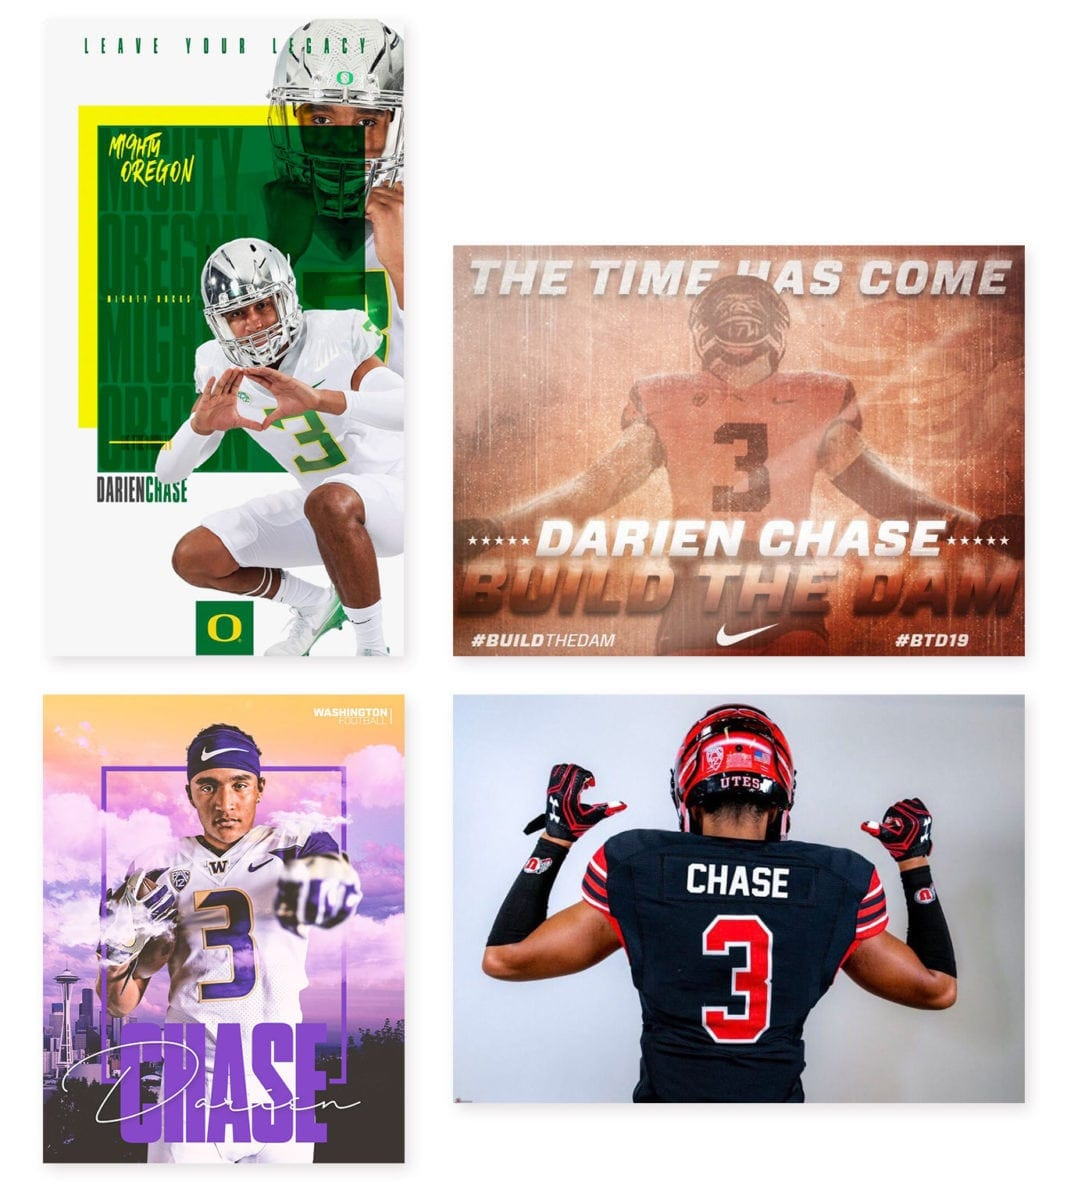 Darien Chase of Union has posted pictures of him on Twitter in several uniforms. He told ClarkCountyToday.com that he is focused on the offers from Washington, Oregon, Oregon State, and Utah. He expects to make a decision in August. Photos courtesy of Darien Chase